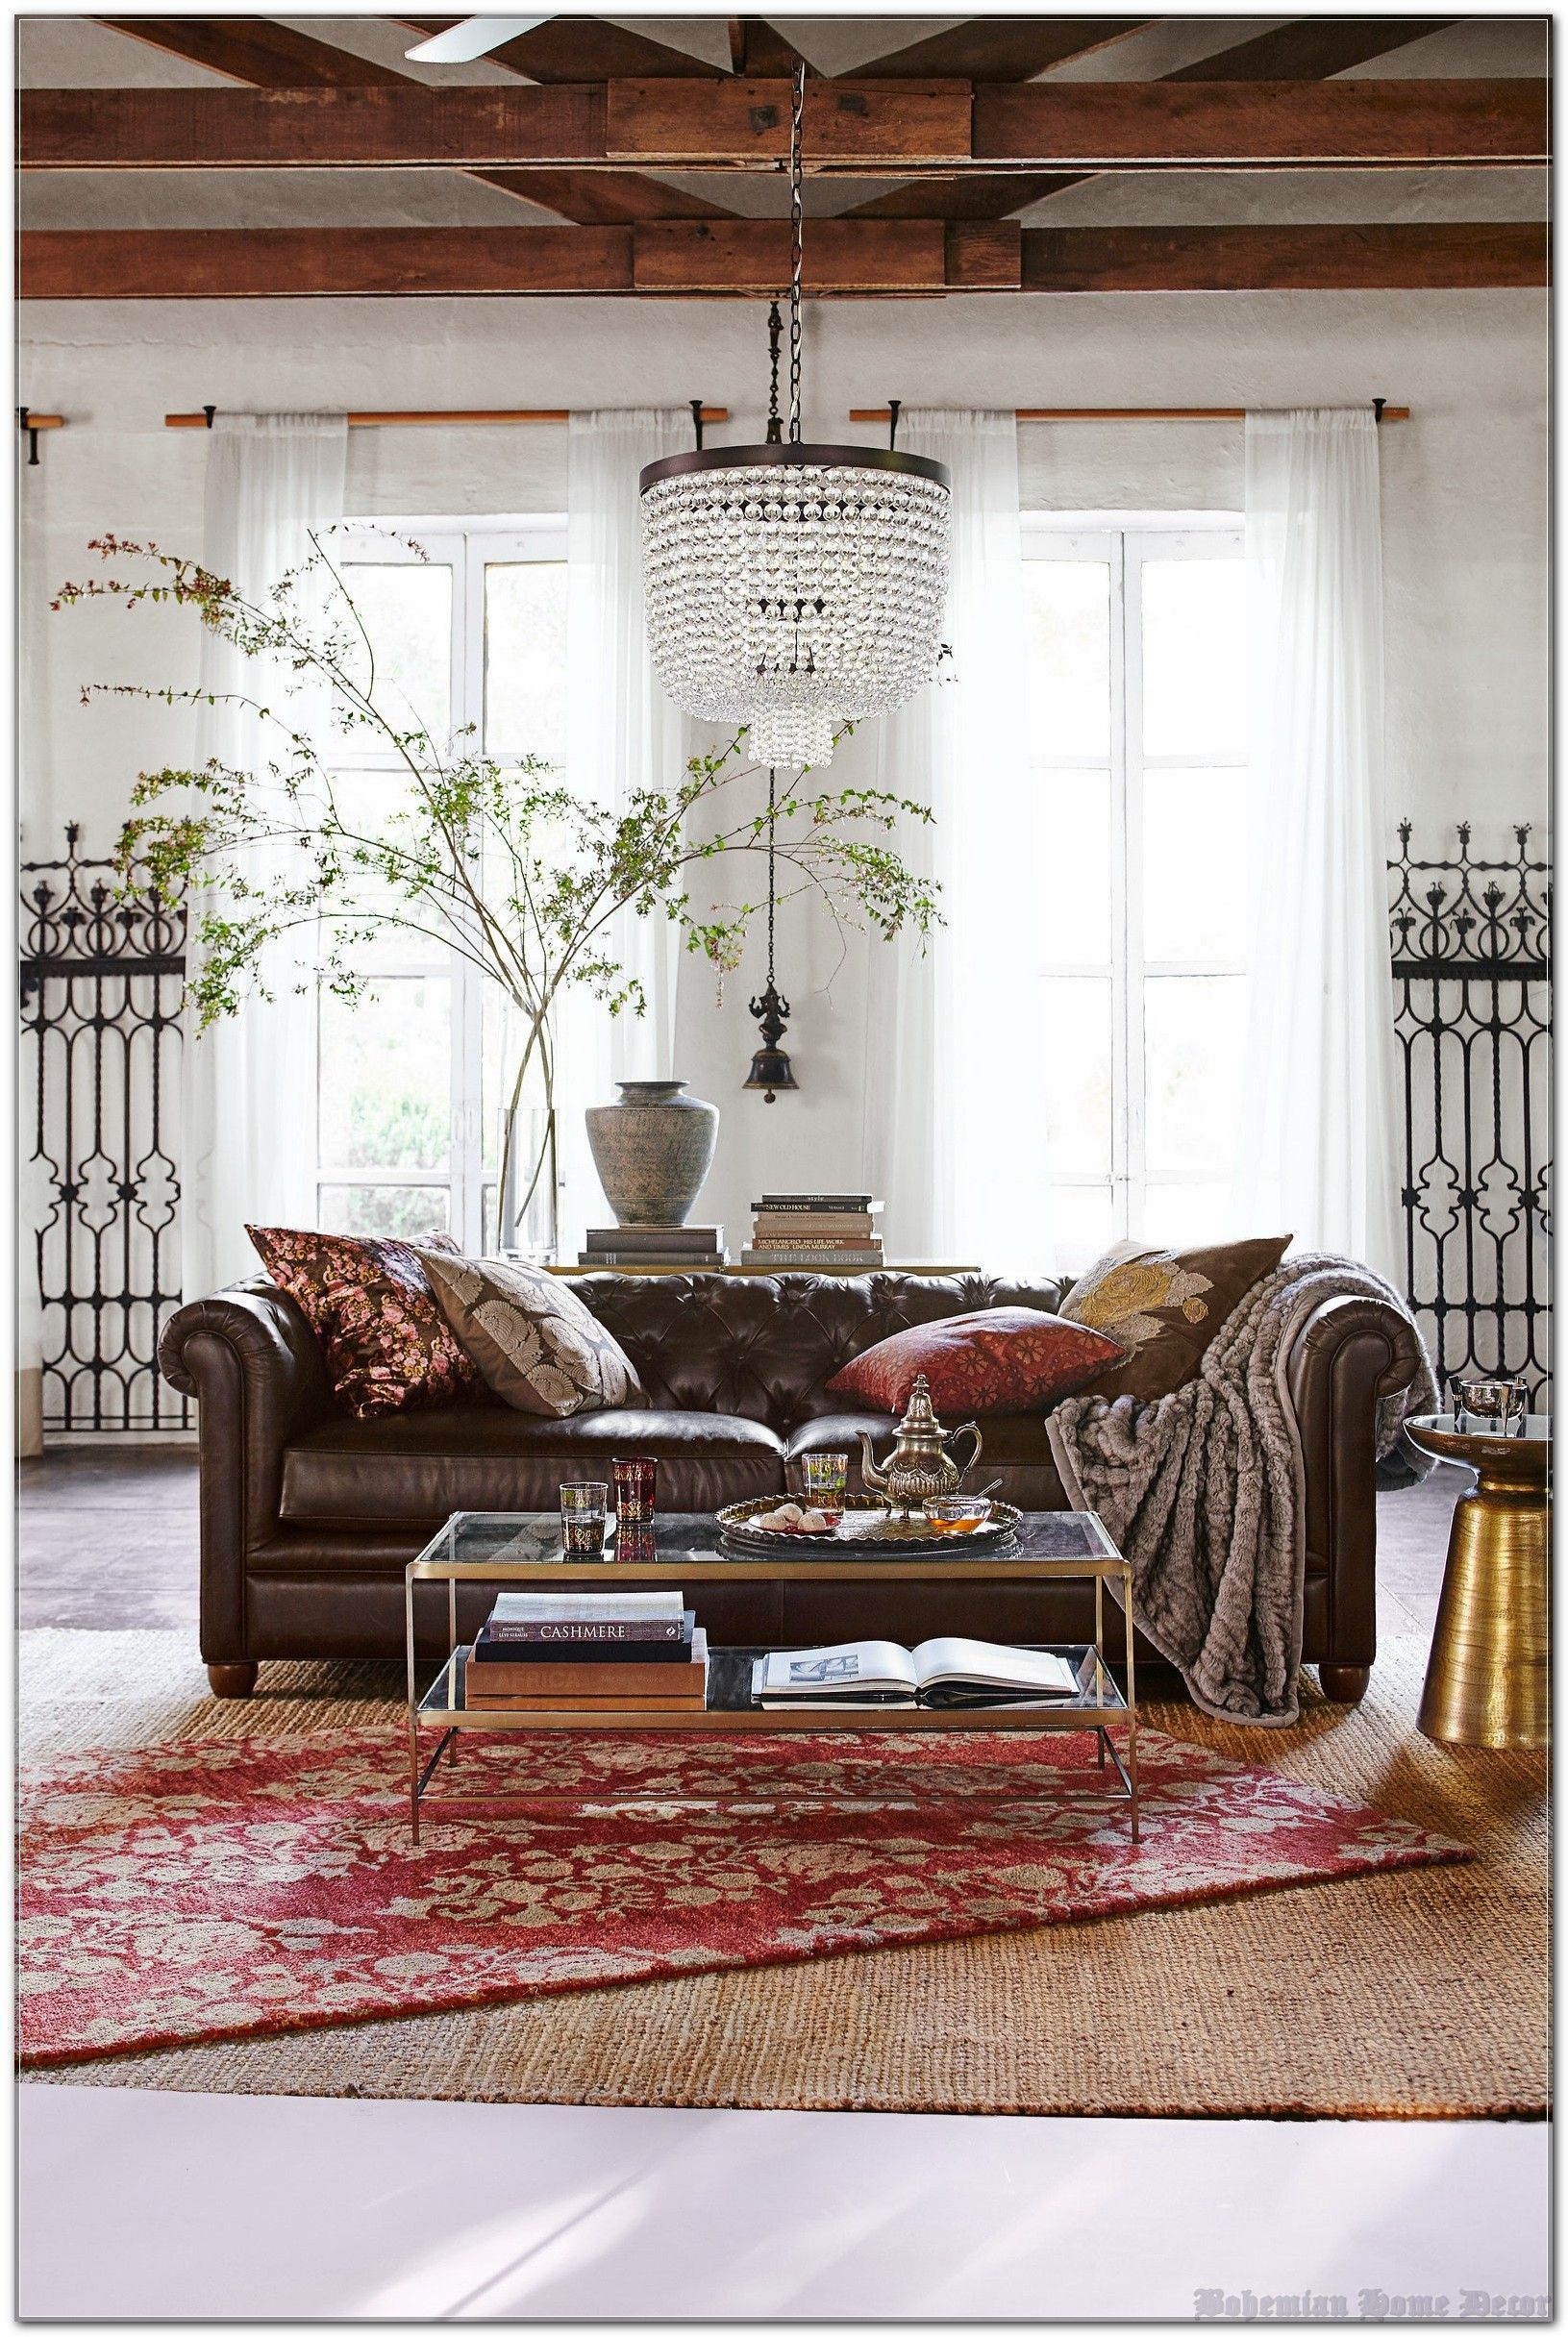 How To Start Bohemian Home Decor With Less Than 0